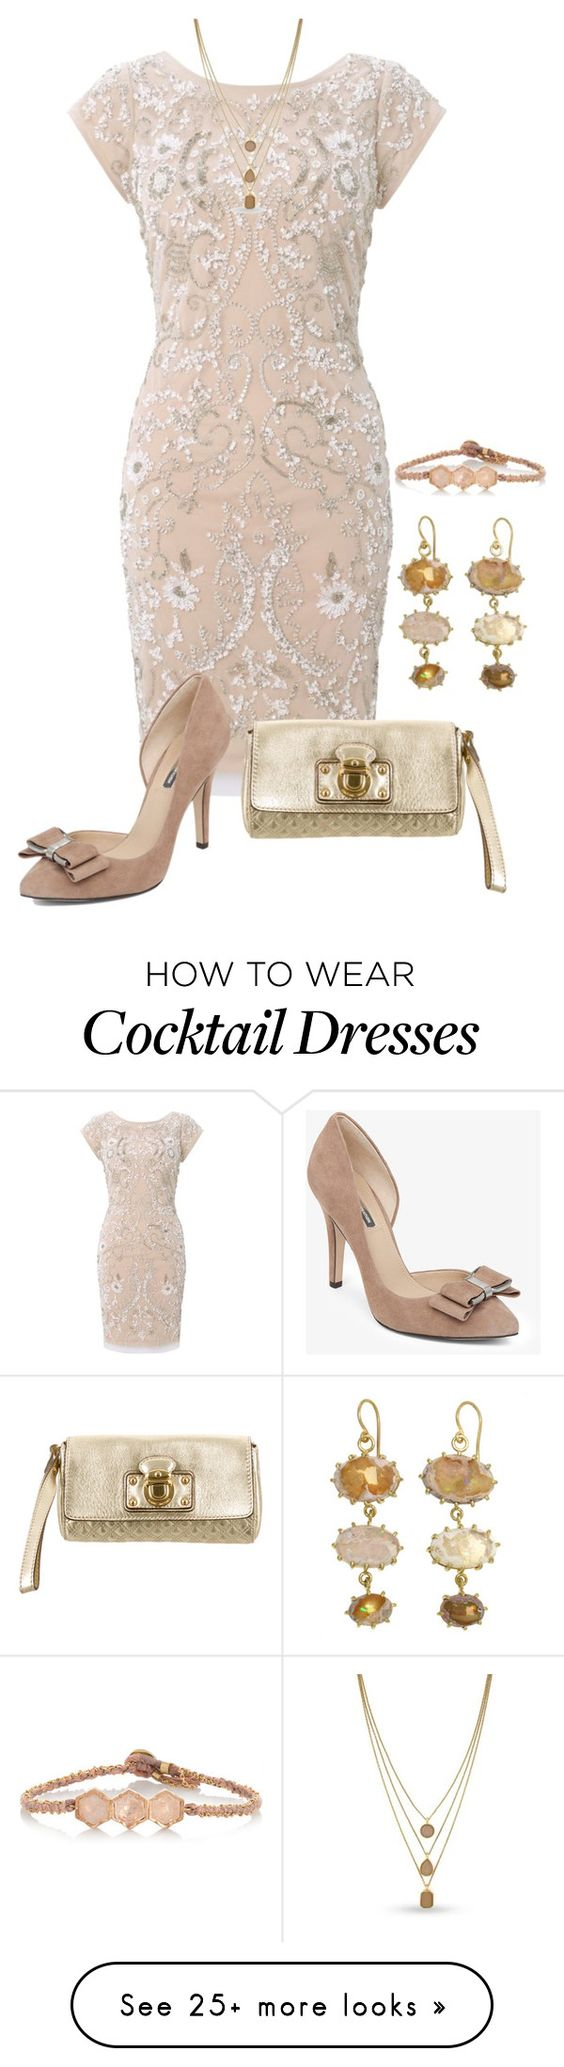 """""""Untitled #3051"""" by rkdk1101 on Polyvore featuring Aidan Mattox, BCBGeneration, Marc Jacobs, BROOKE GREGSON and Vince Camuto"""